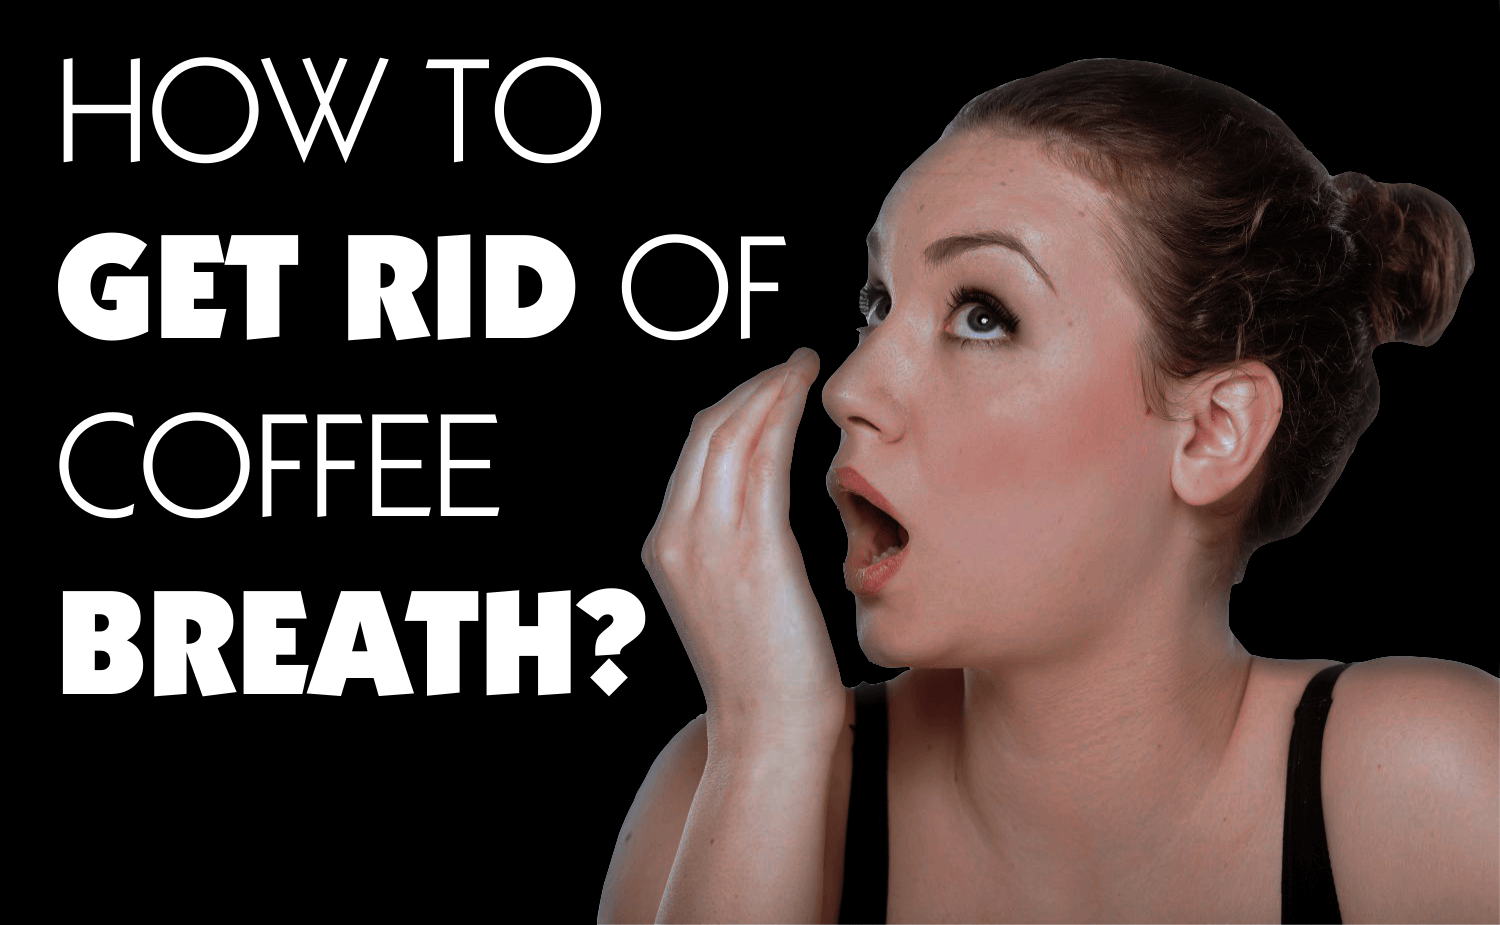 How to Get Rid of Coffee Breath